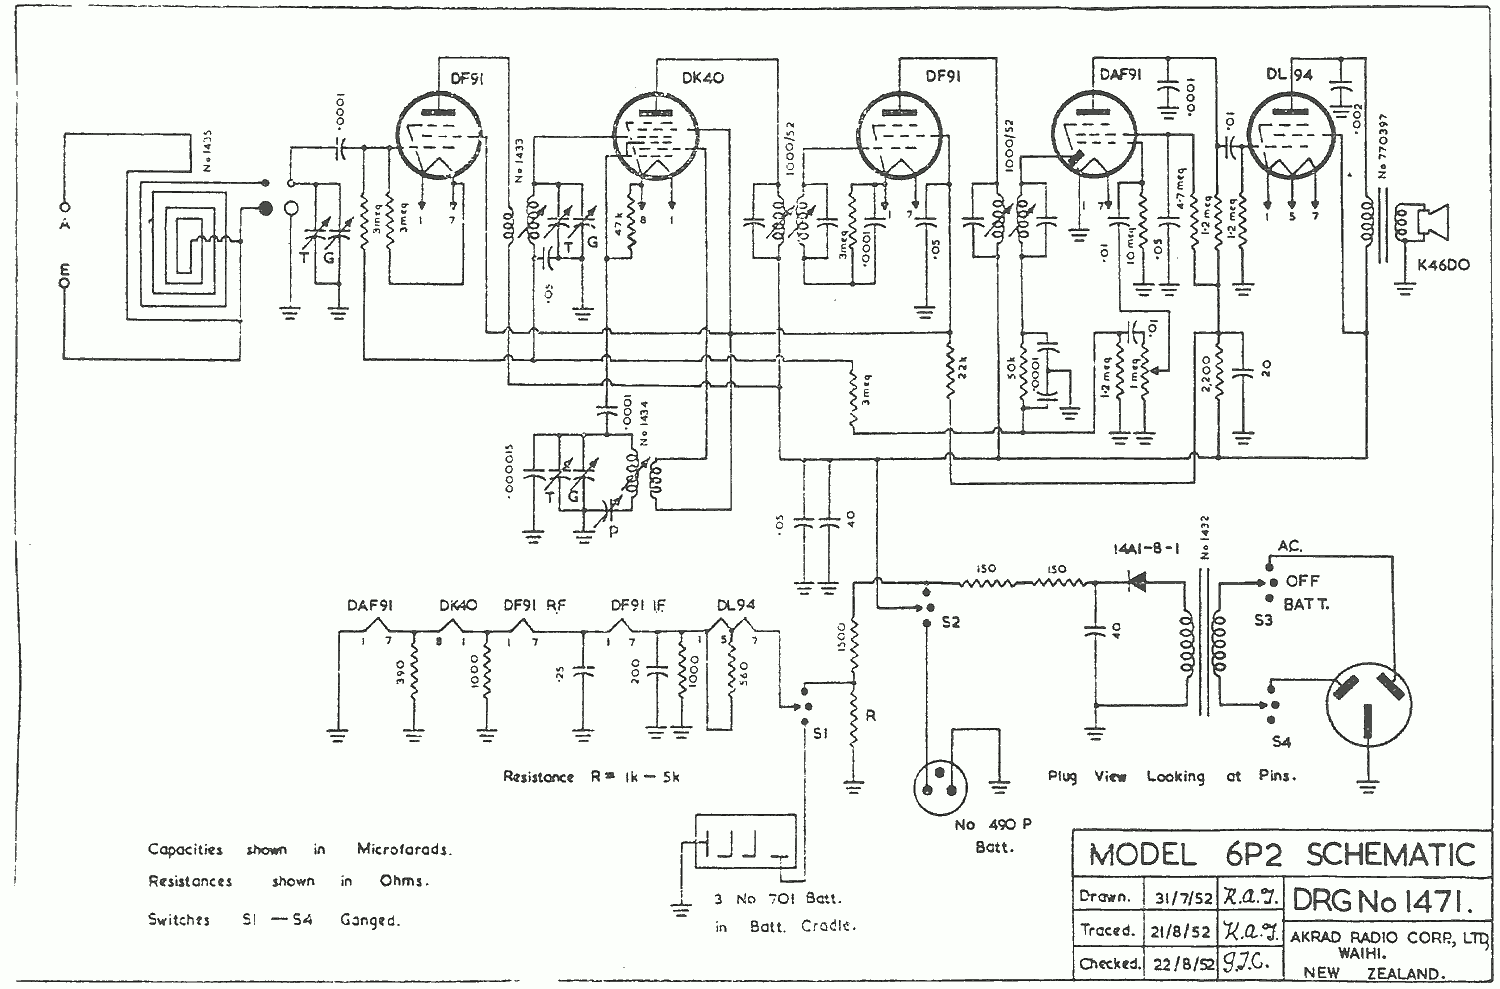 1952 Clipper - Regent - Pacific 'Countess' 6P2 Schematic